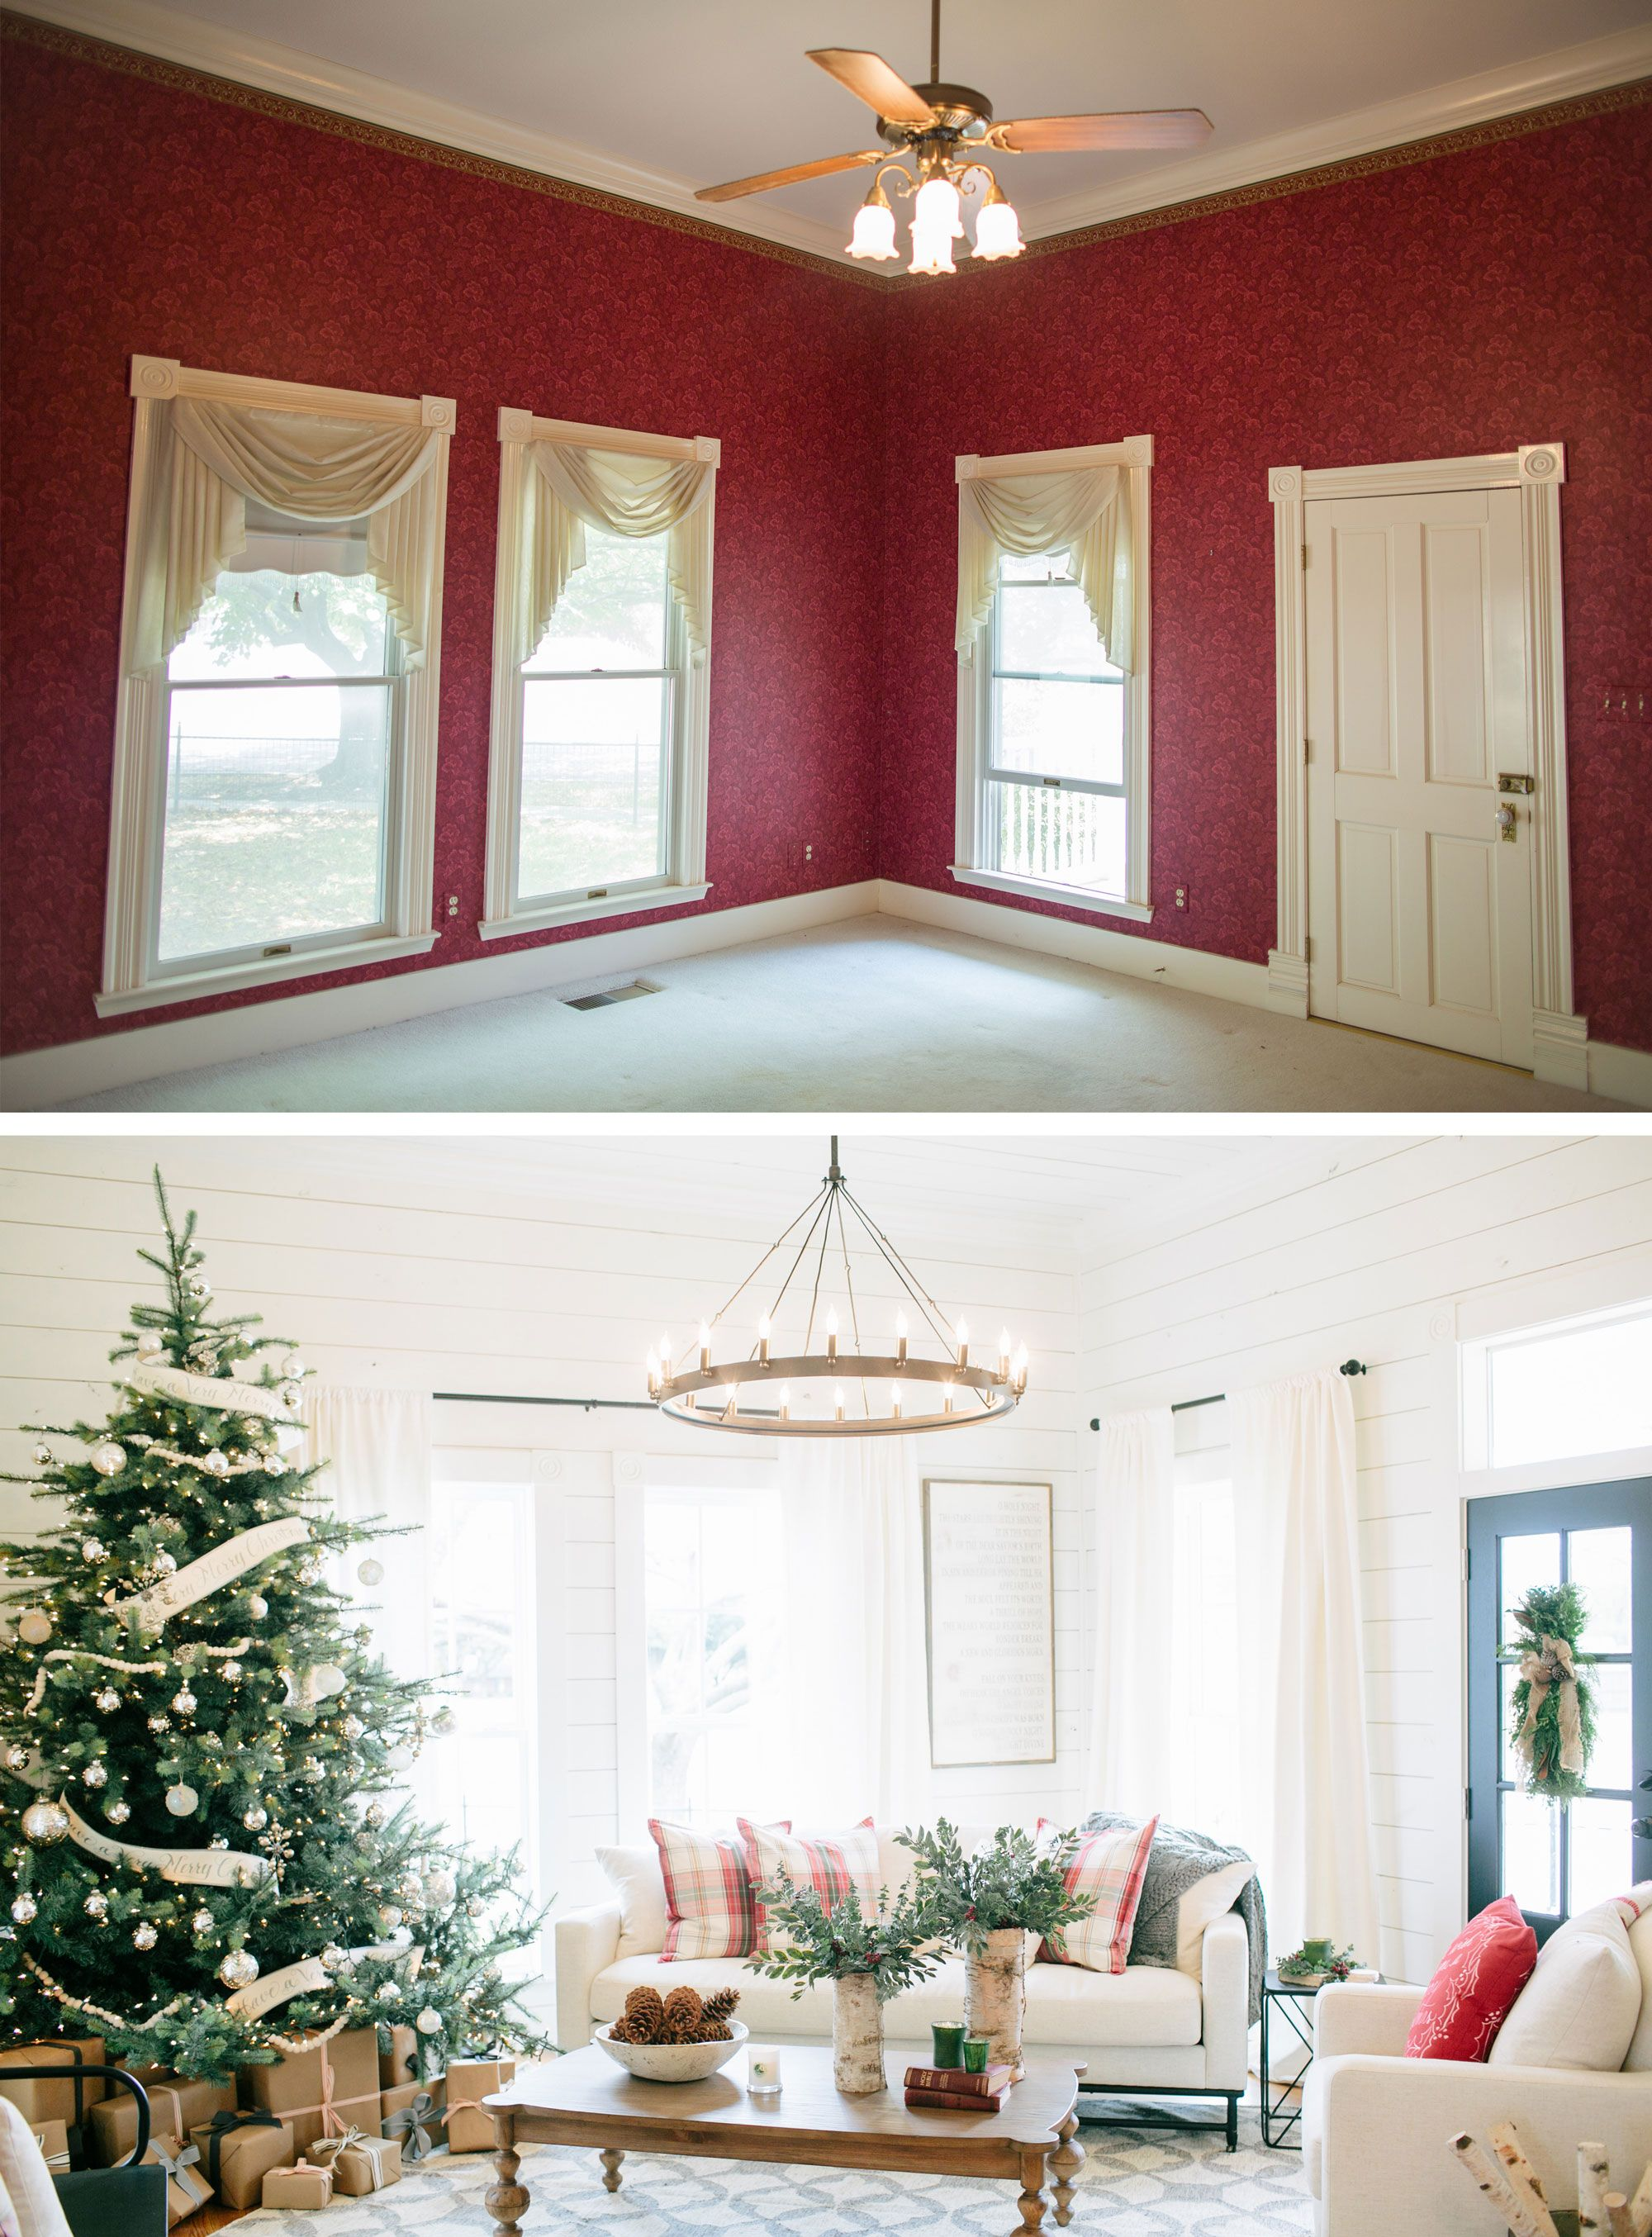 fixer upper season 3 chip and joanna gaines christmas decorations house renovation - Joanna Gaines Christmas Decor